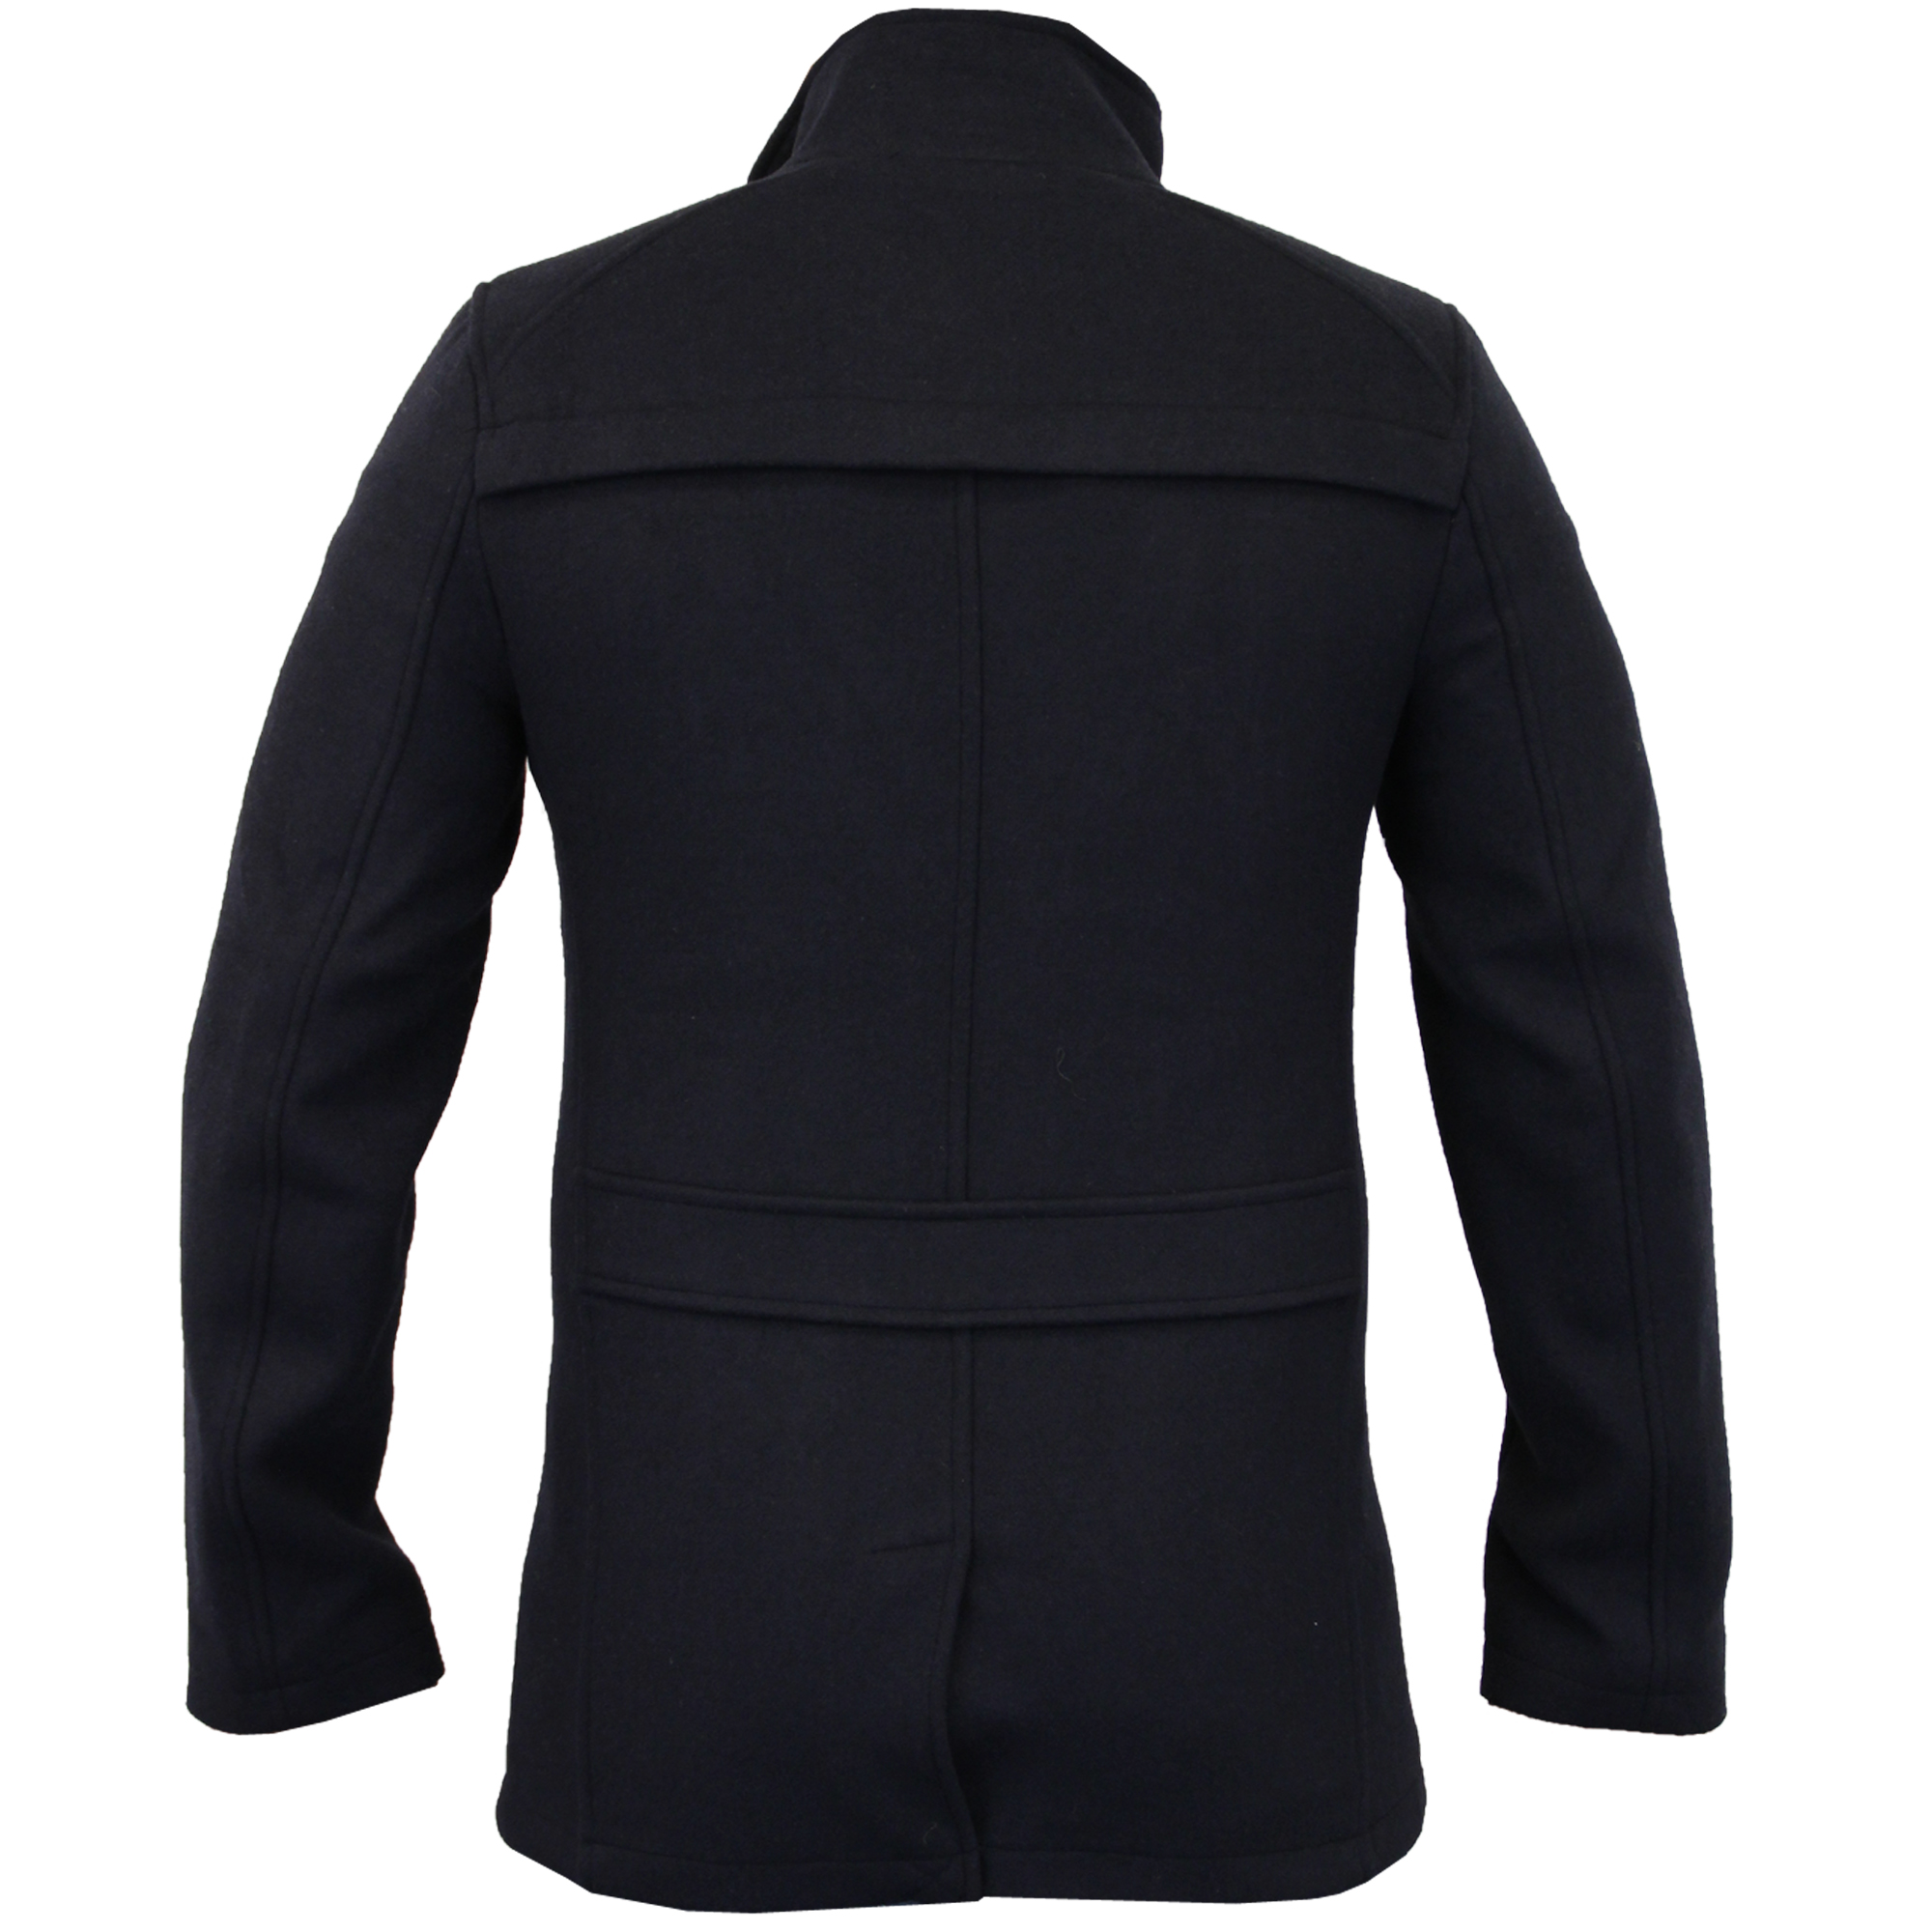 Mens-Wool-Mix-Jacket-Threadbare-Coat-Double-Breasted-Duffle-Lined-Winter-New thumbnail 9